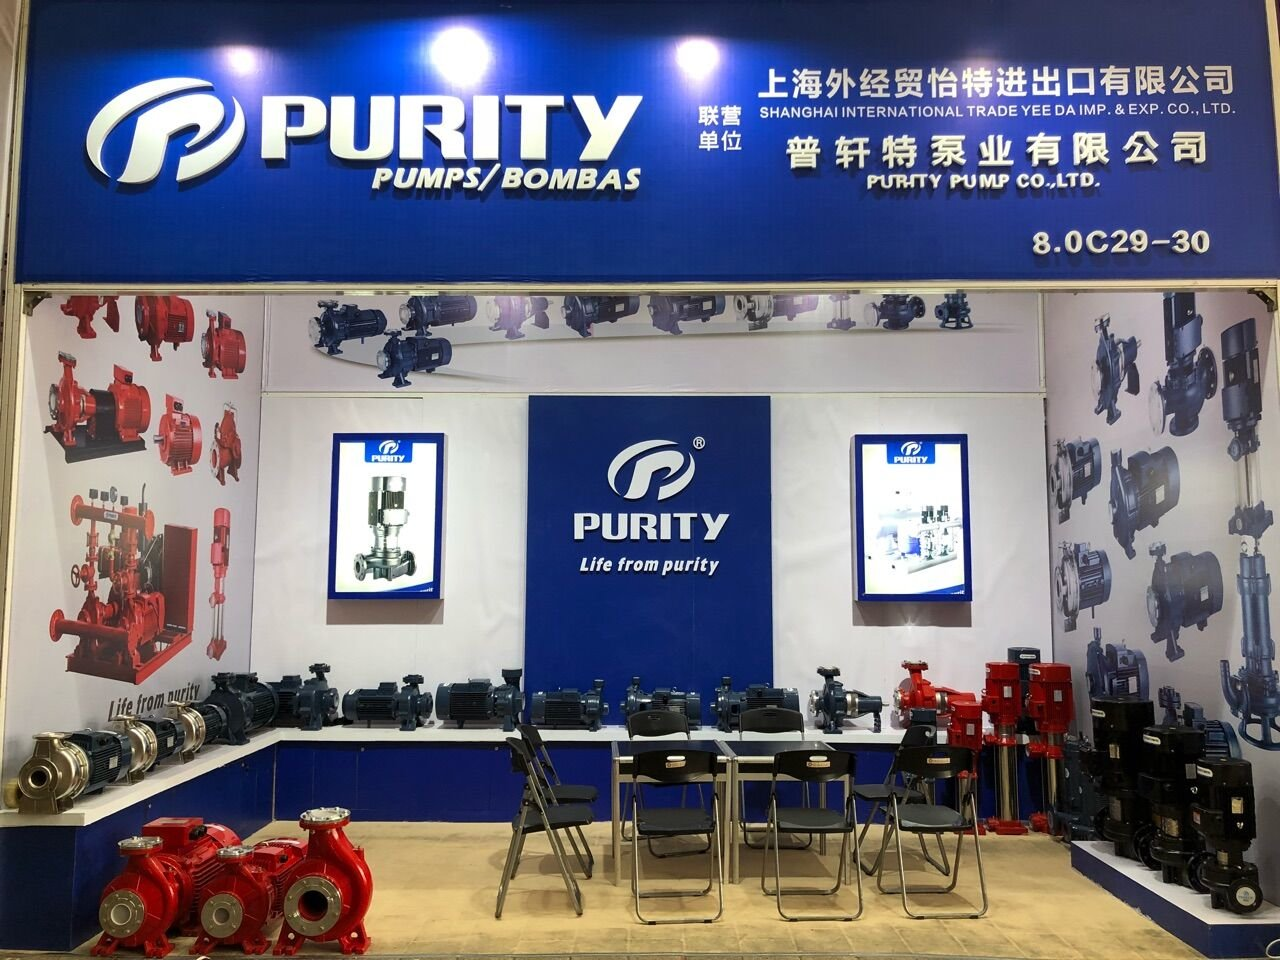 PURITY INVITES YOU TO THE SHOWCASE OF ITS NEWEST PRODUCTS AT CANTON FAIR, 15-19 APRIL 2018